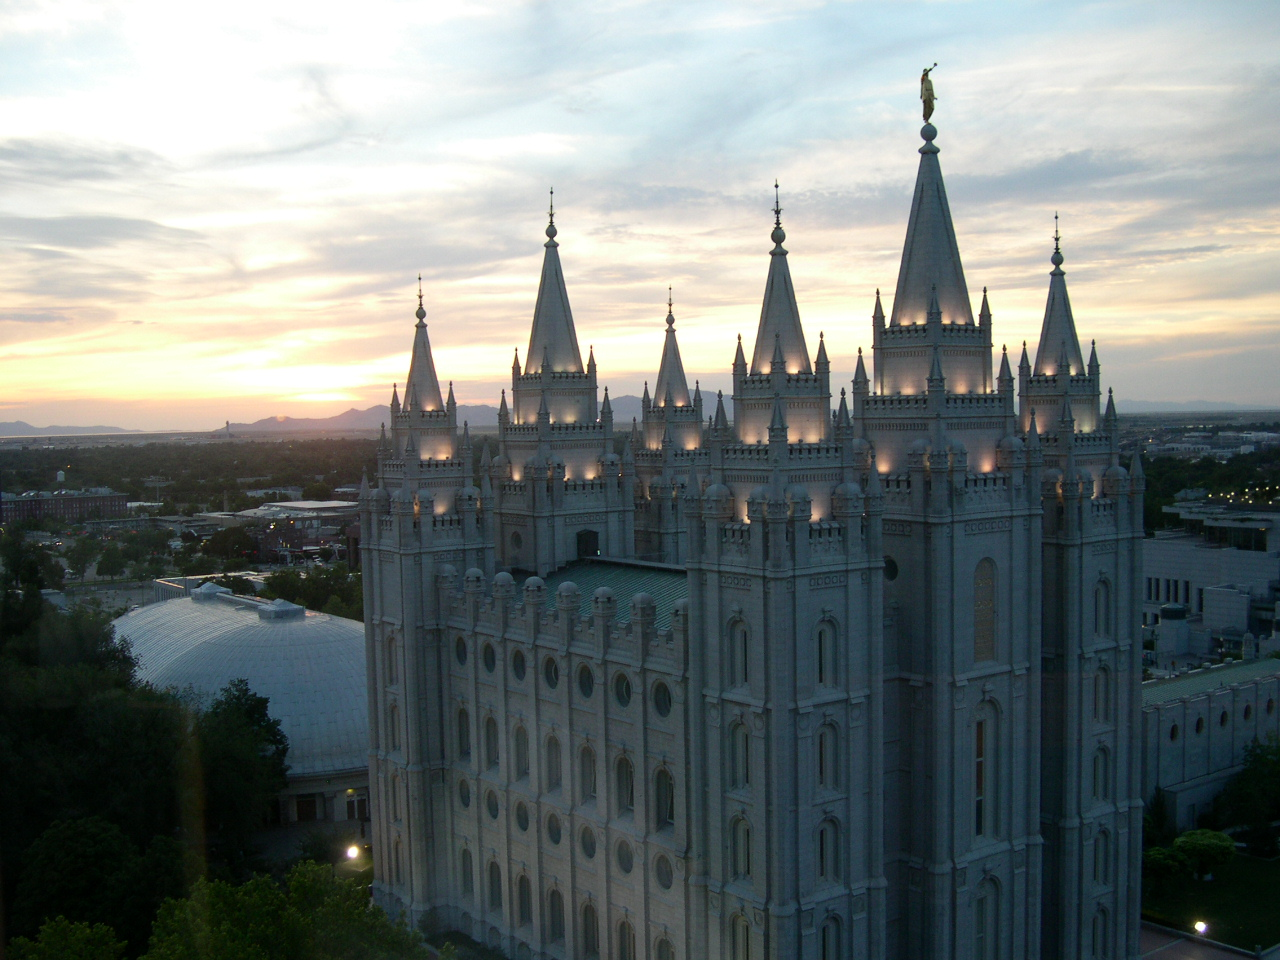 lds temple desktop wallpaper viewing gallery